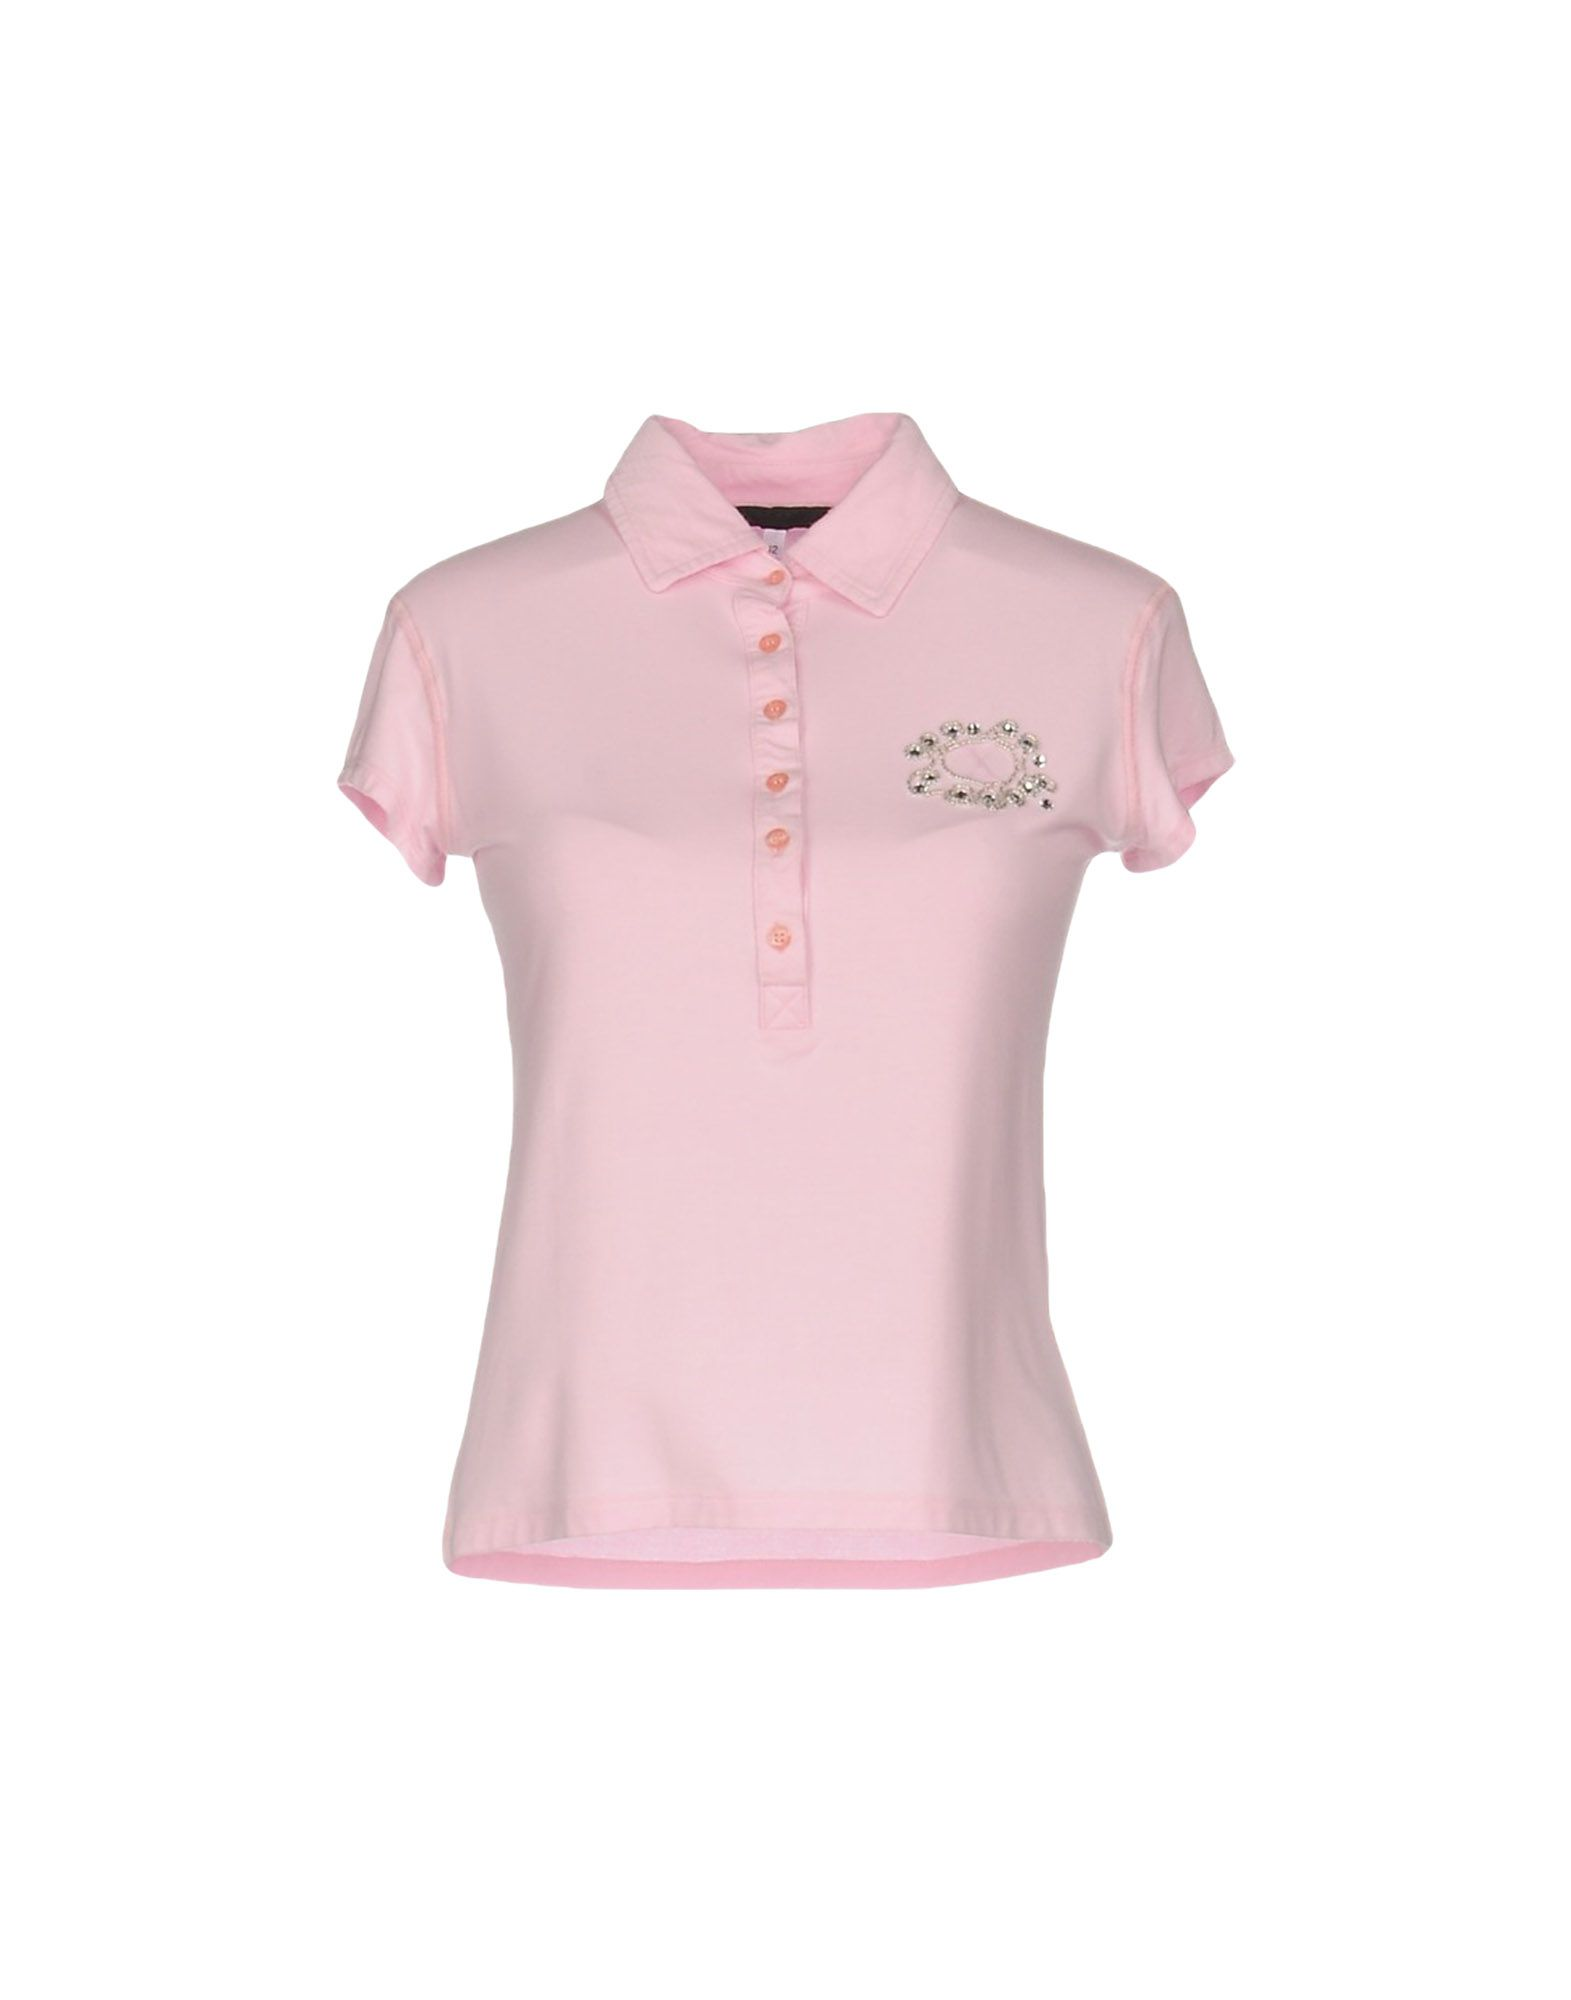 richmond x female richmond x polo shirts